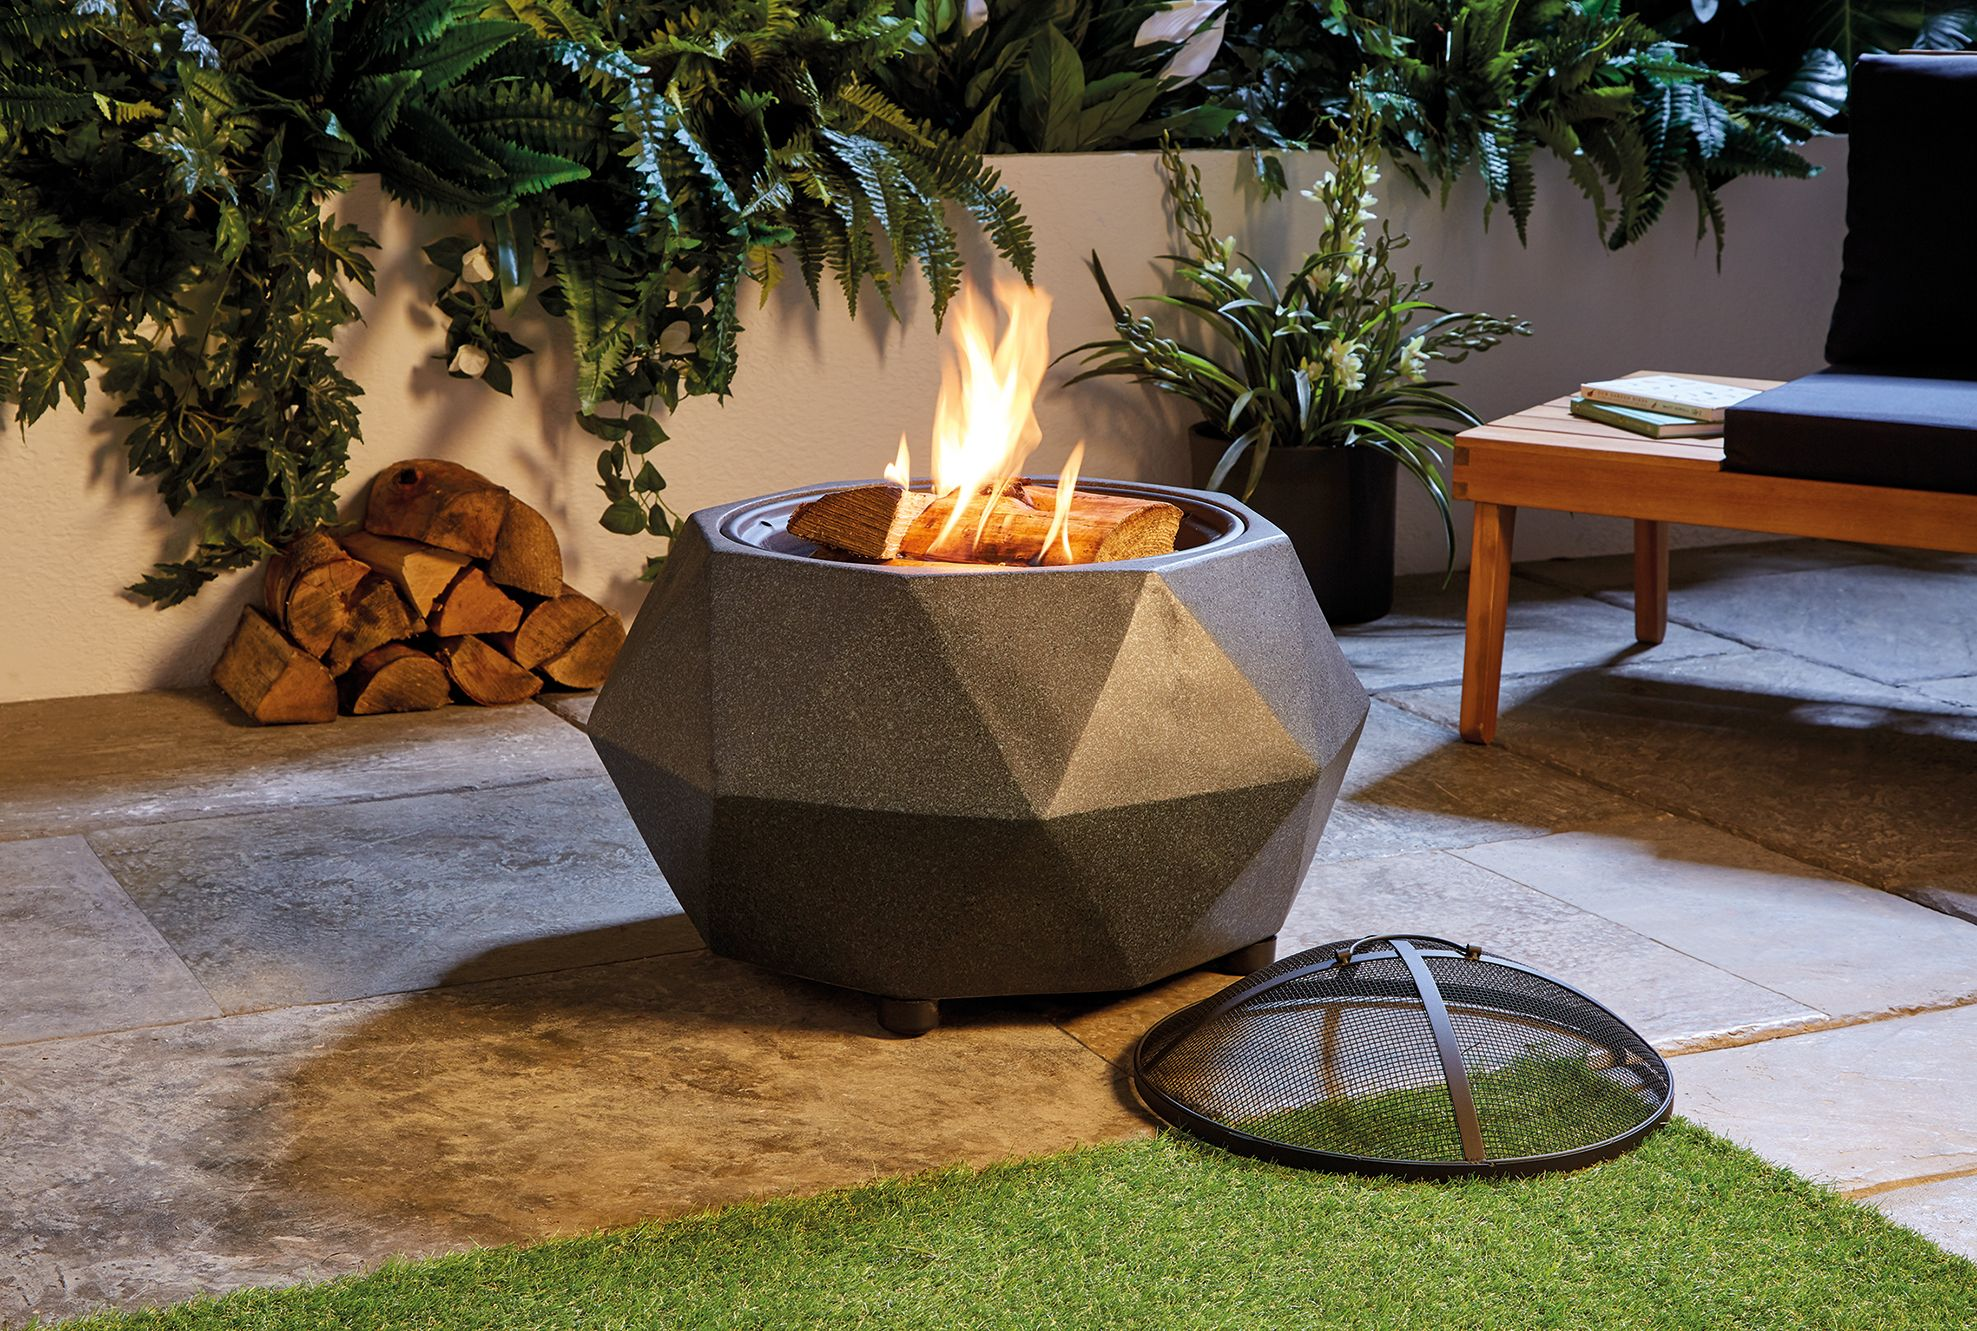 Barbecue Aldi Aldi Selling 50 Fire Pit Which Doubles Up As Bbq Aldi Offers